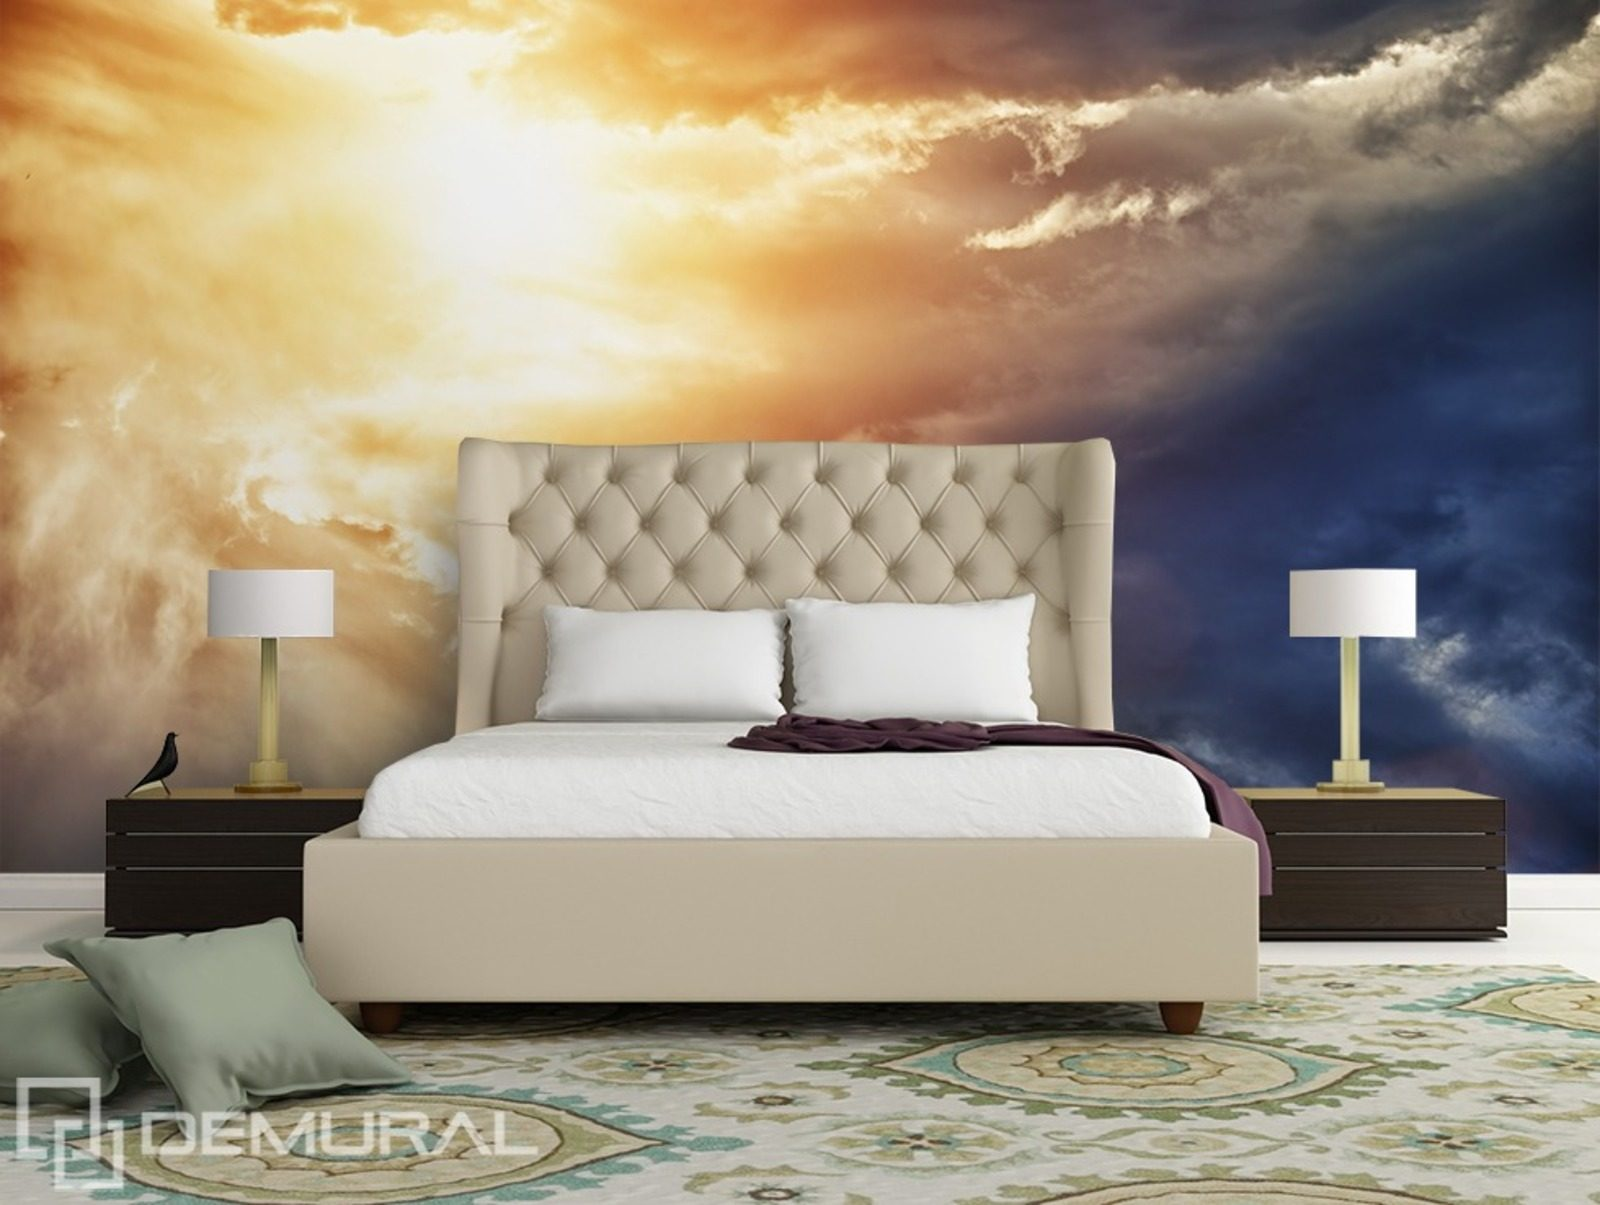 verr cktheit am himmel fototapete f r schlafzimmer fototapeten demural. Black Bedroom Furniture Sets. Home Design Ideas